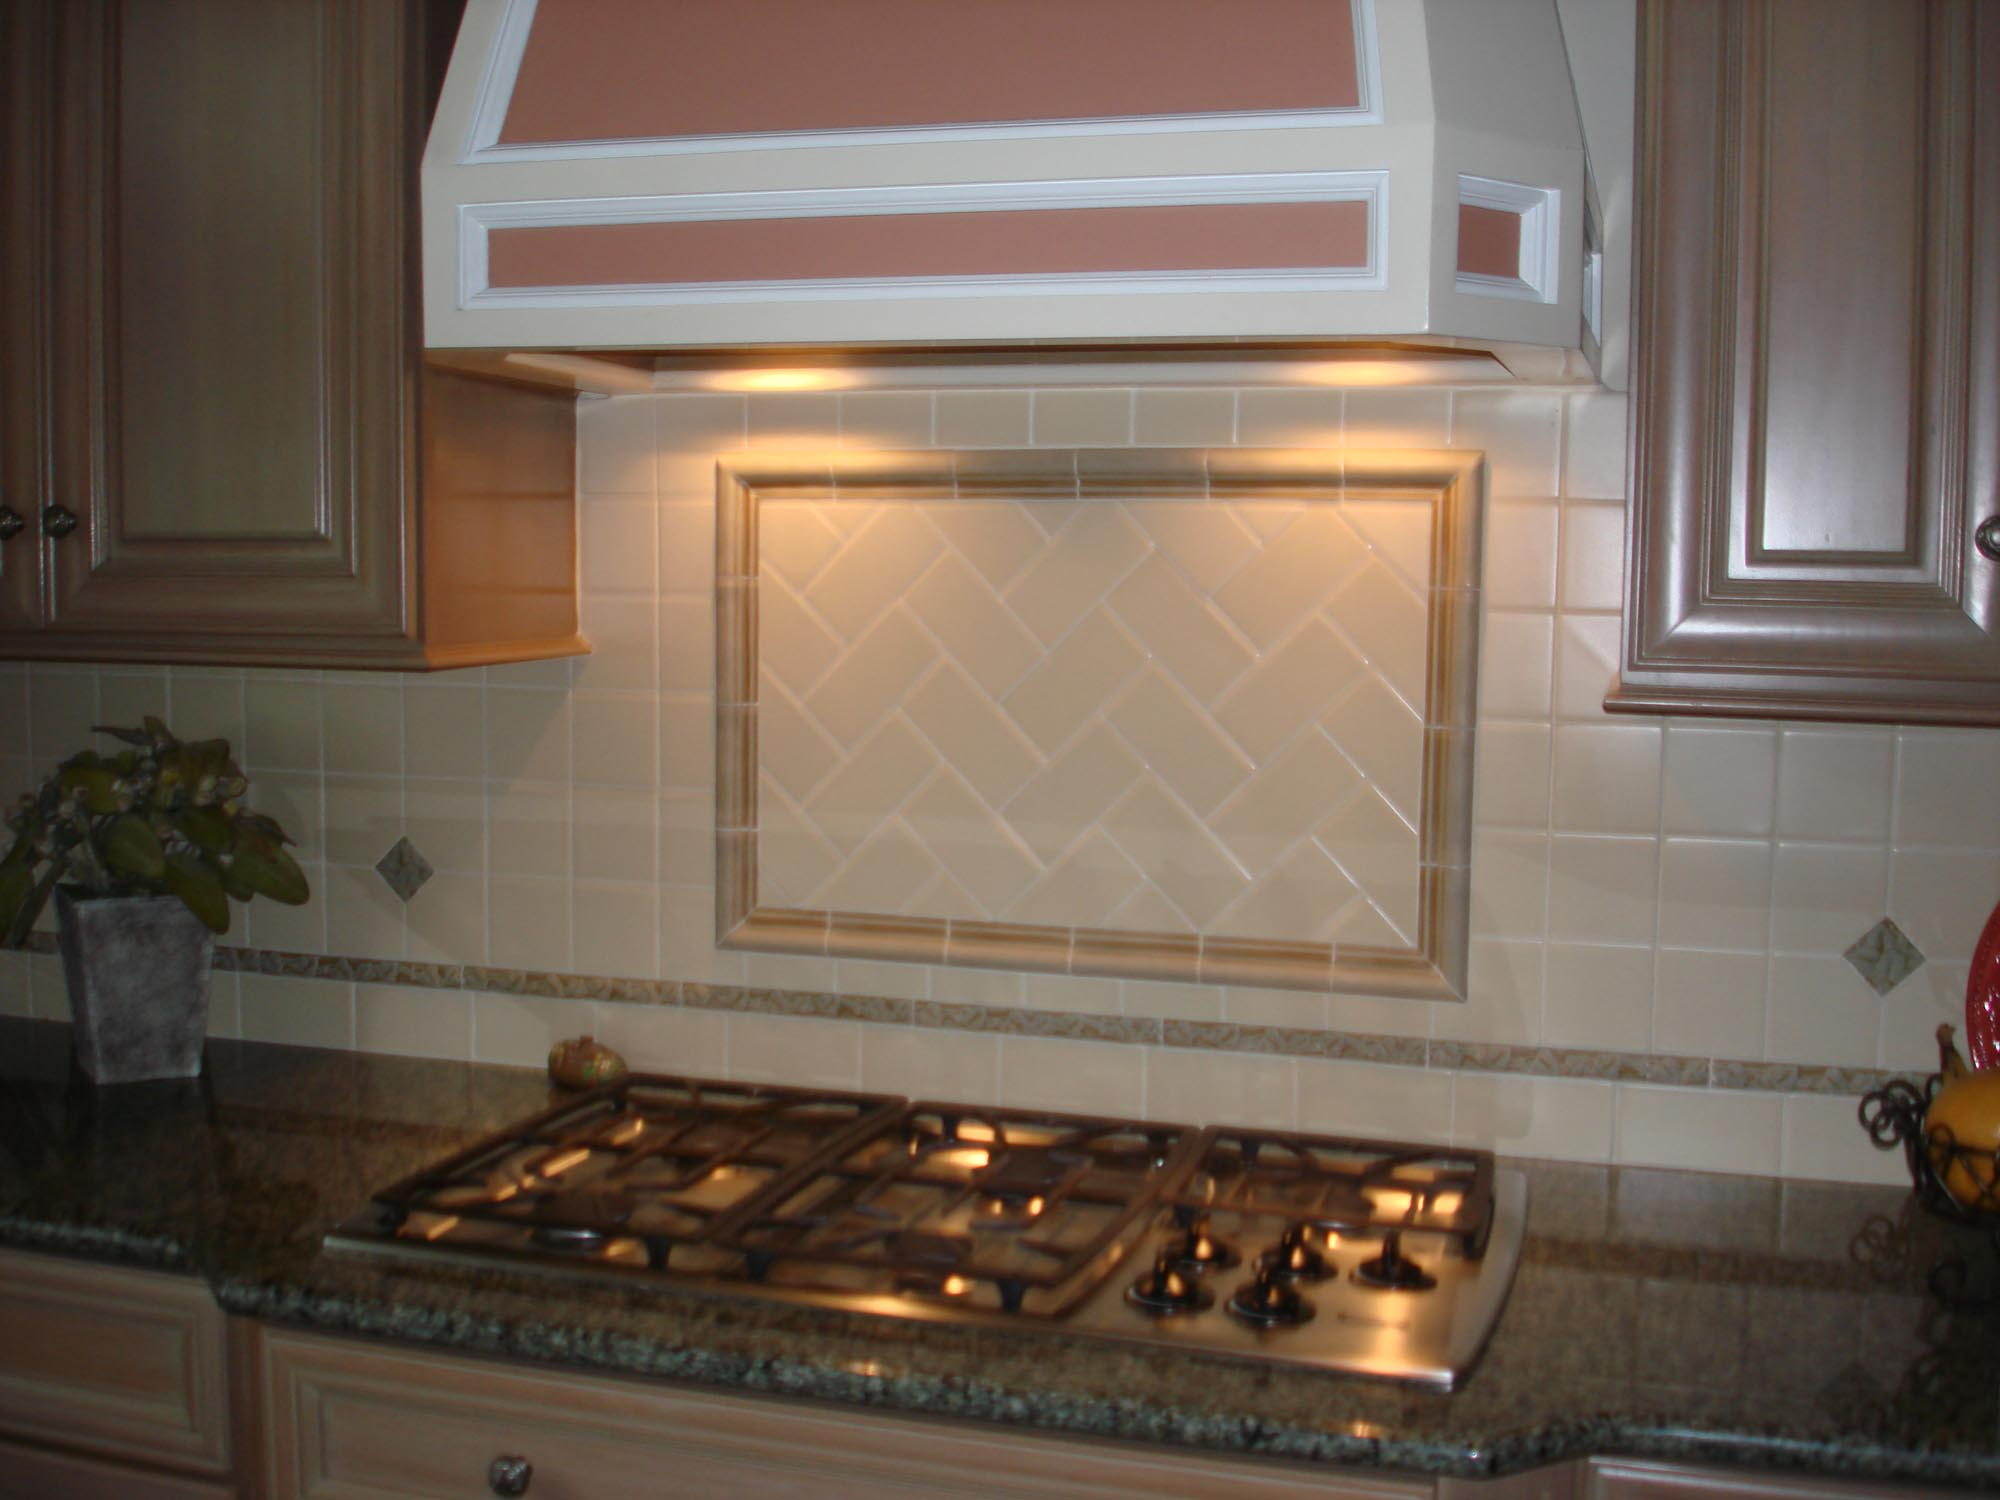 handmade ceramic backsplash new jersey custom tile ceramic tile backsplash submited images